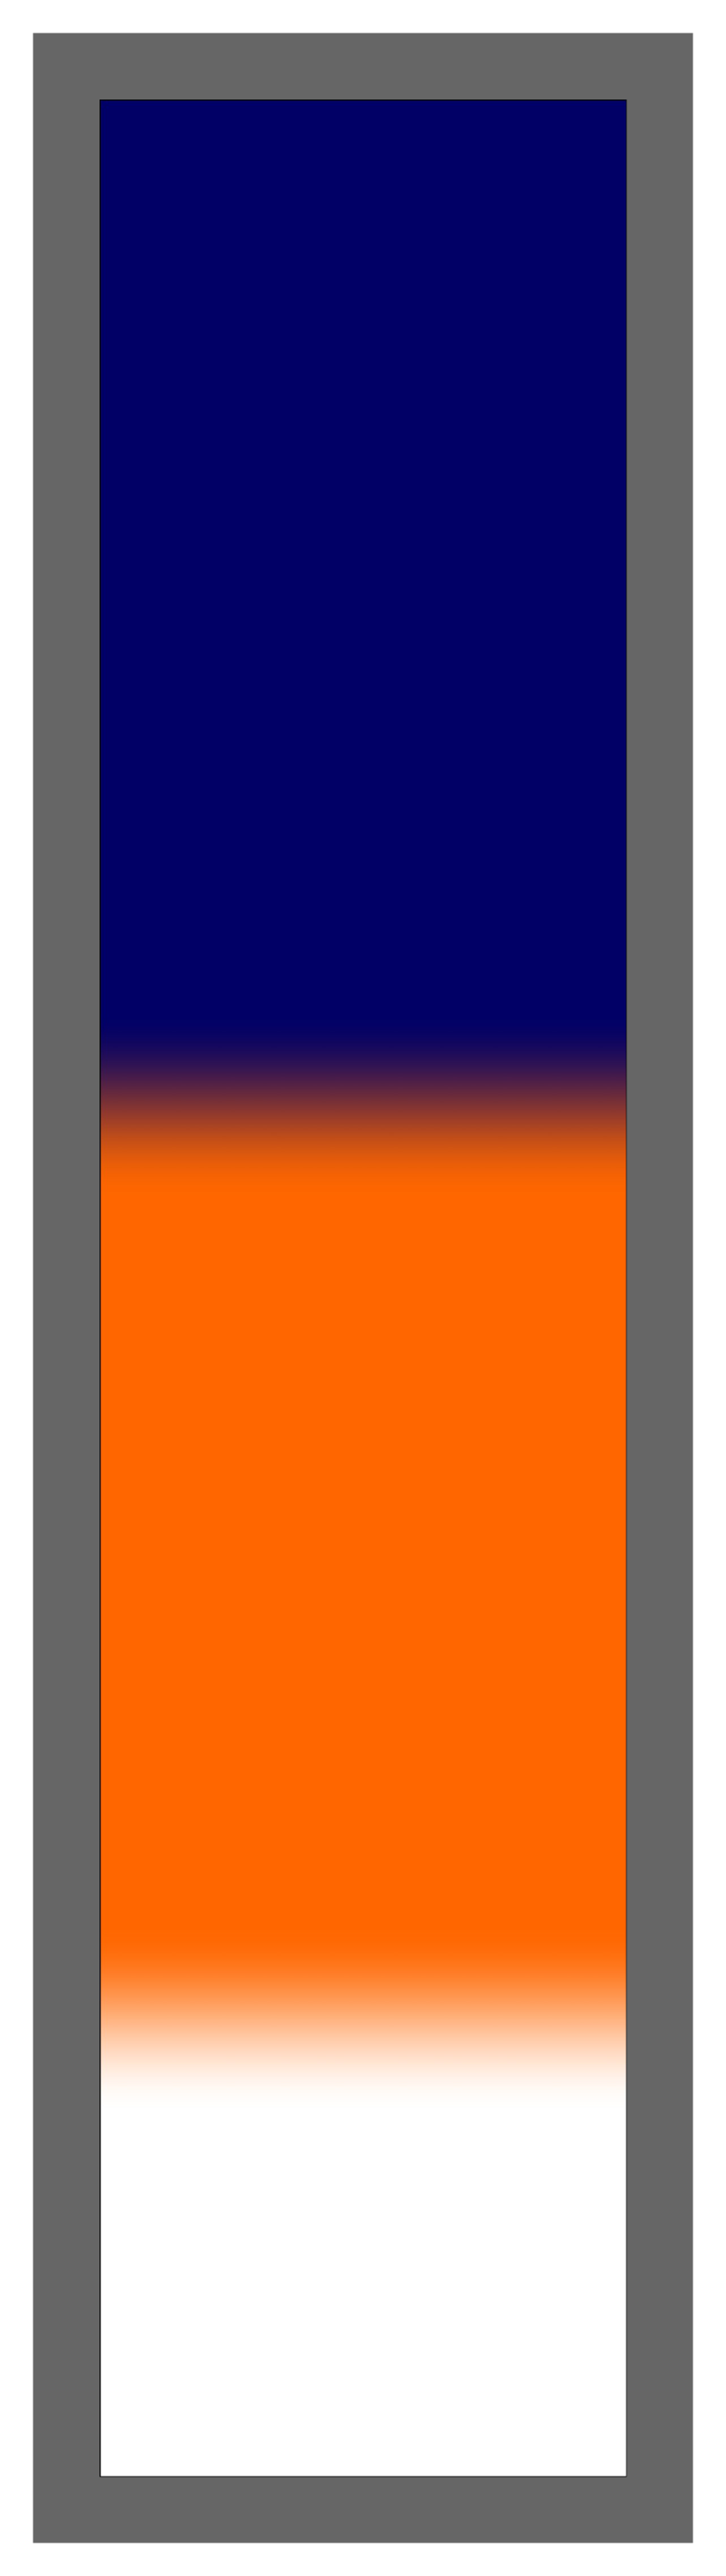 Navy-Orange-White Ombre